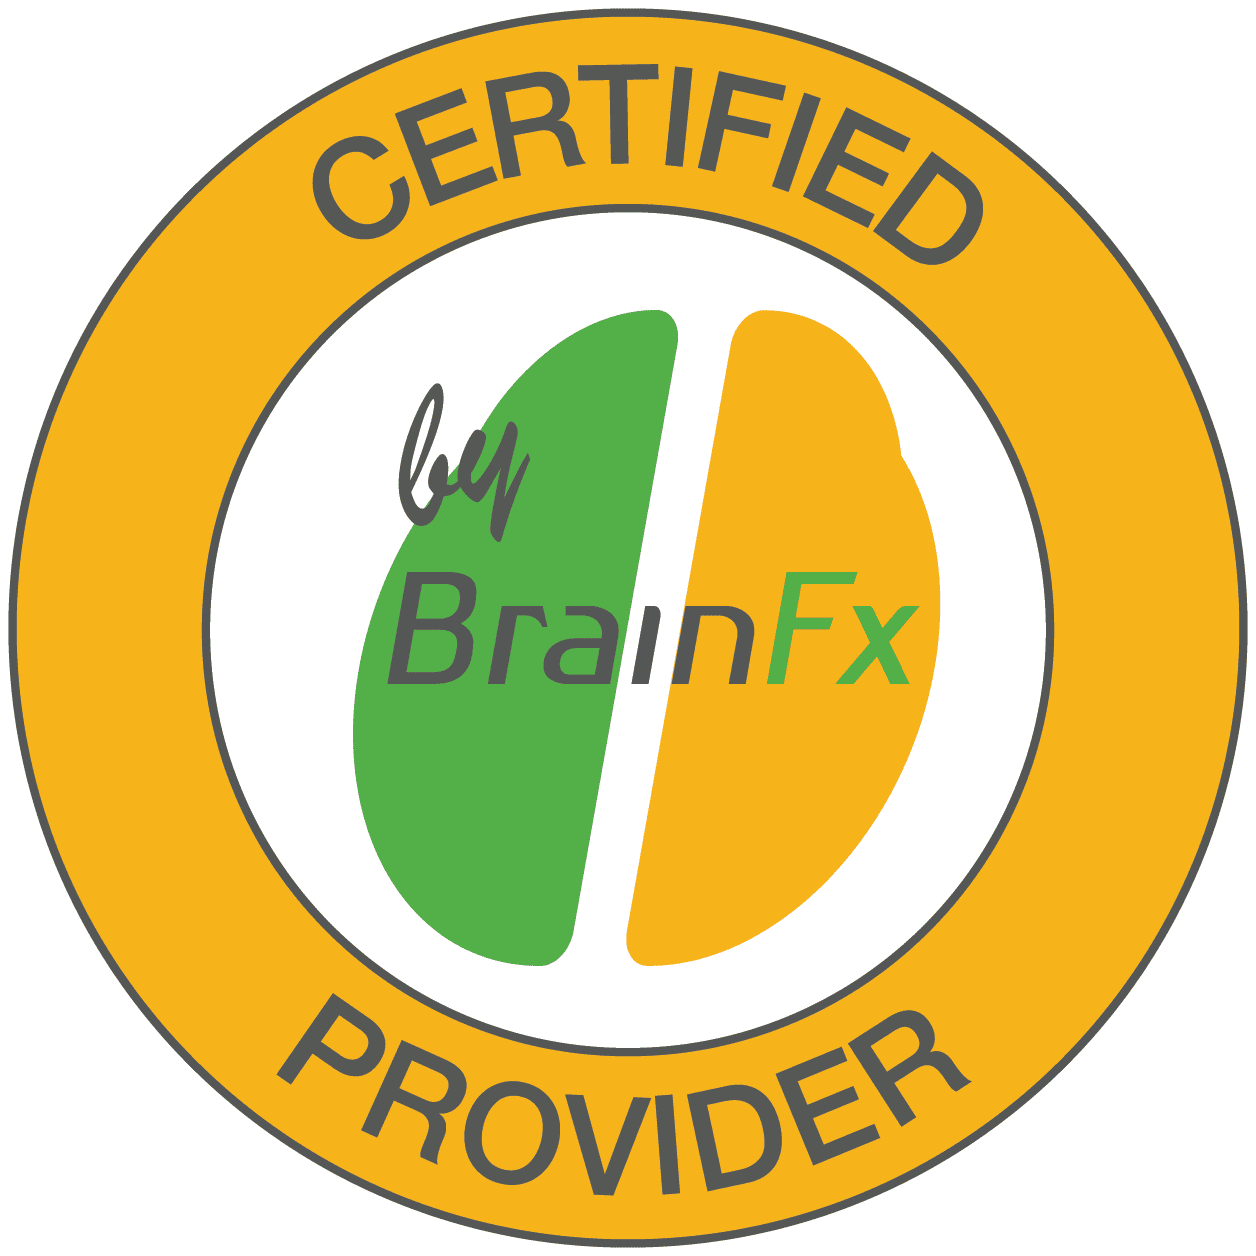 Certified by BrainFx